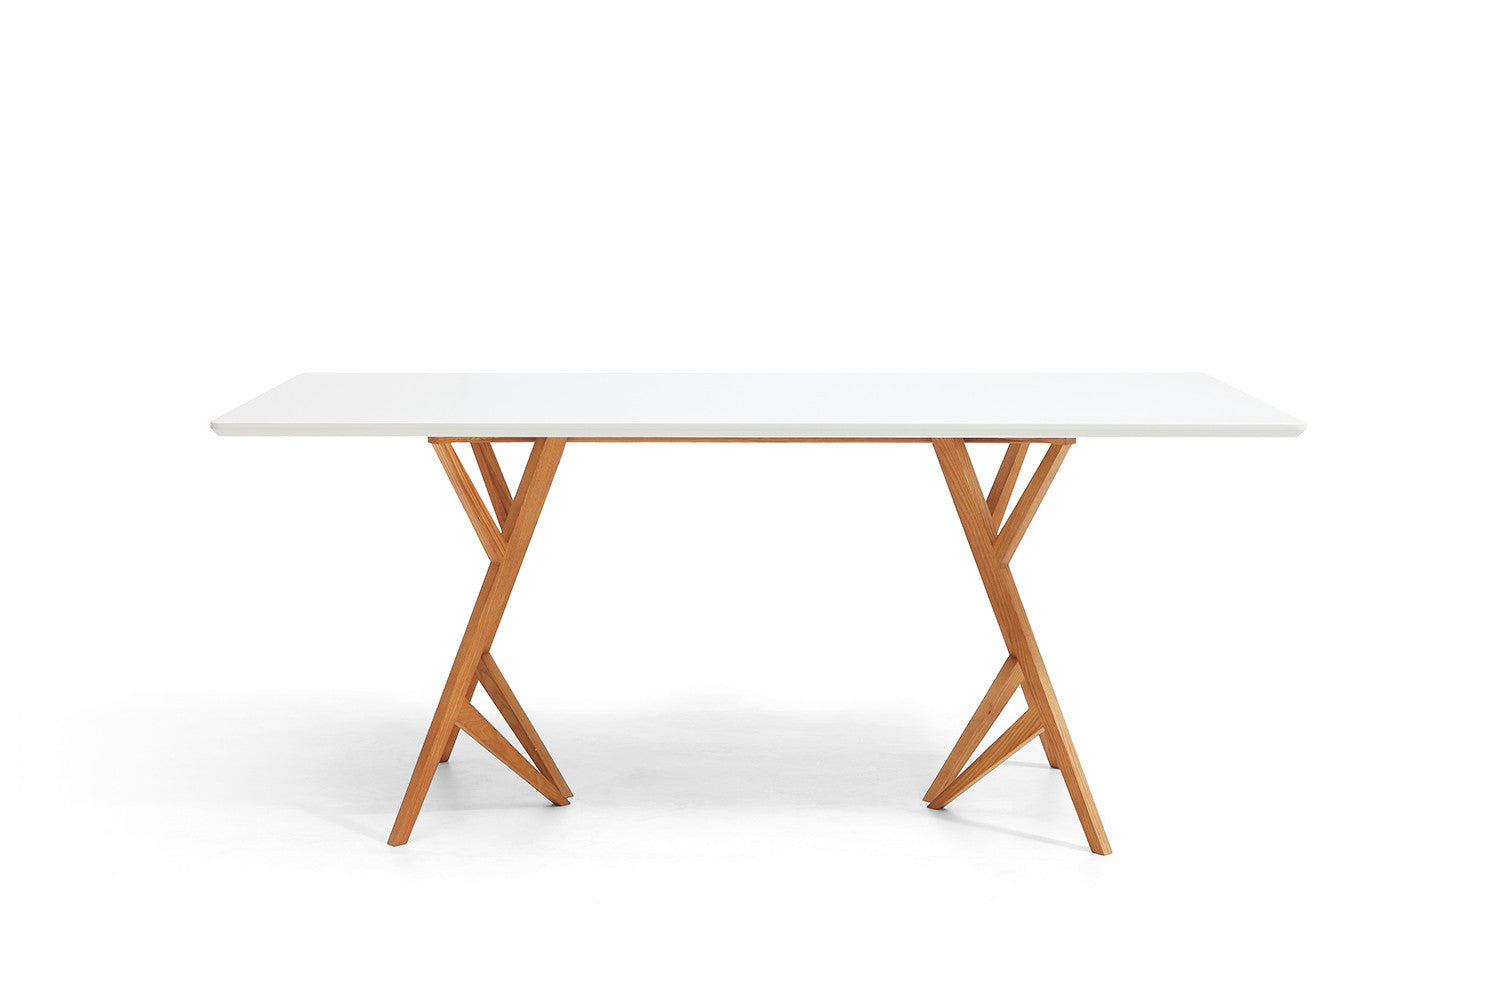 Table de salle manger design scandinave vispa dewarens for Table salle a manger ronde blanche